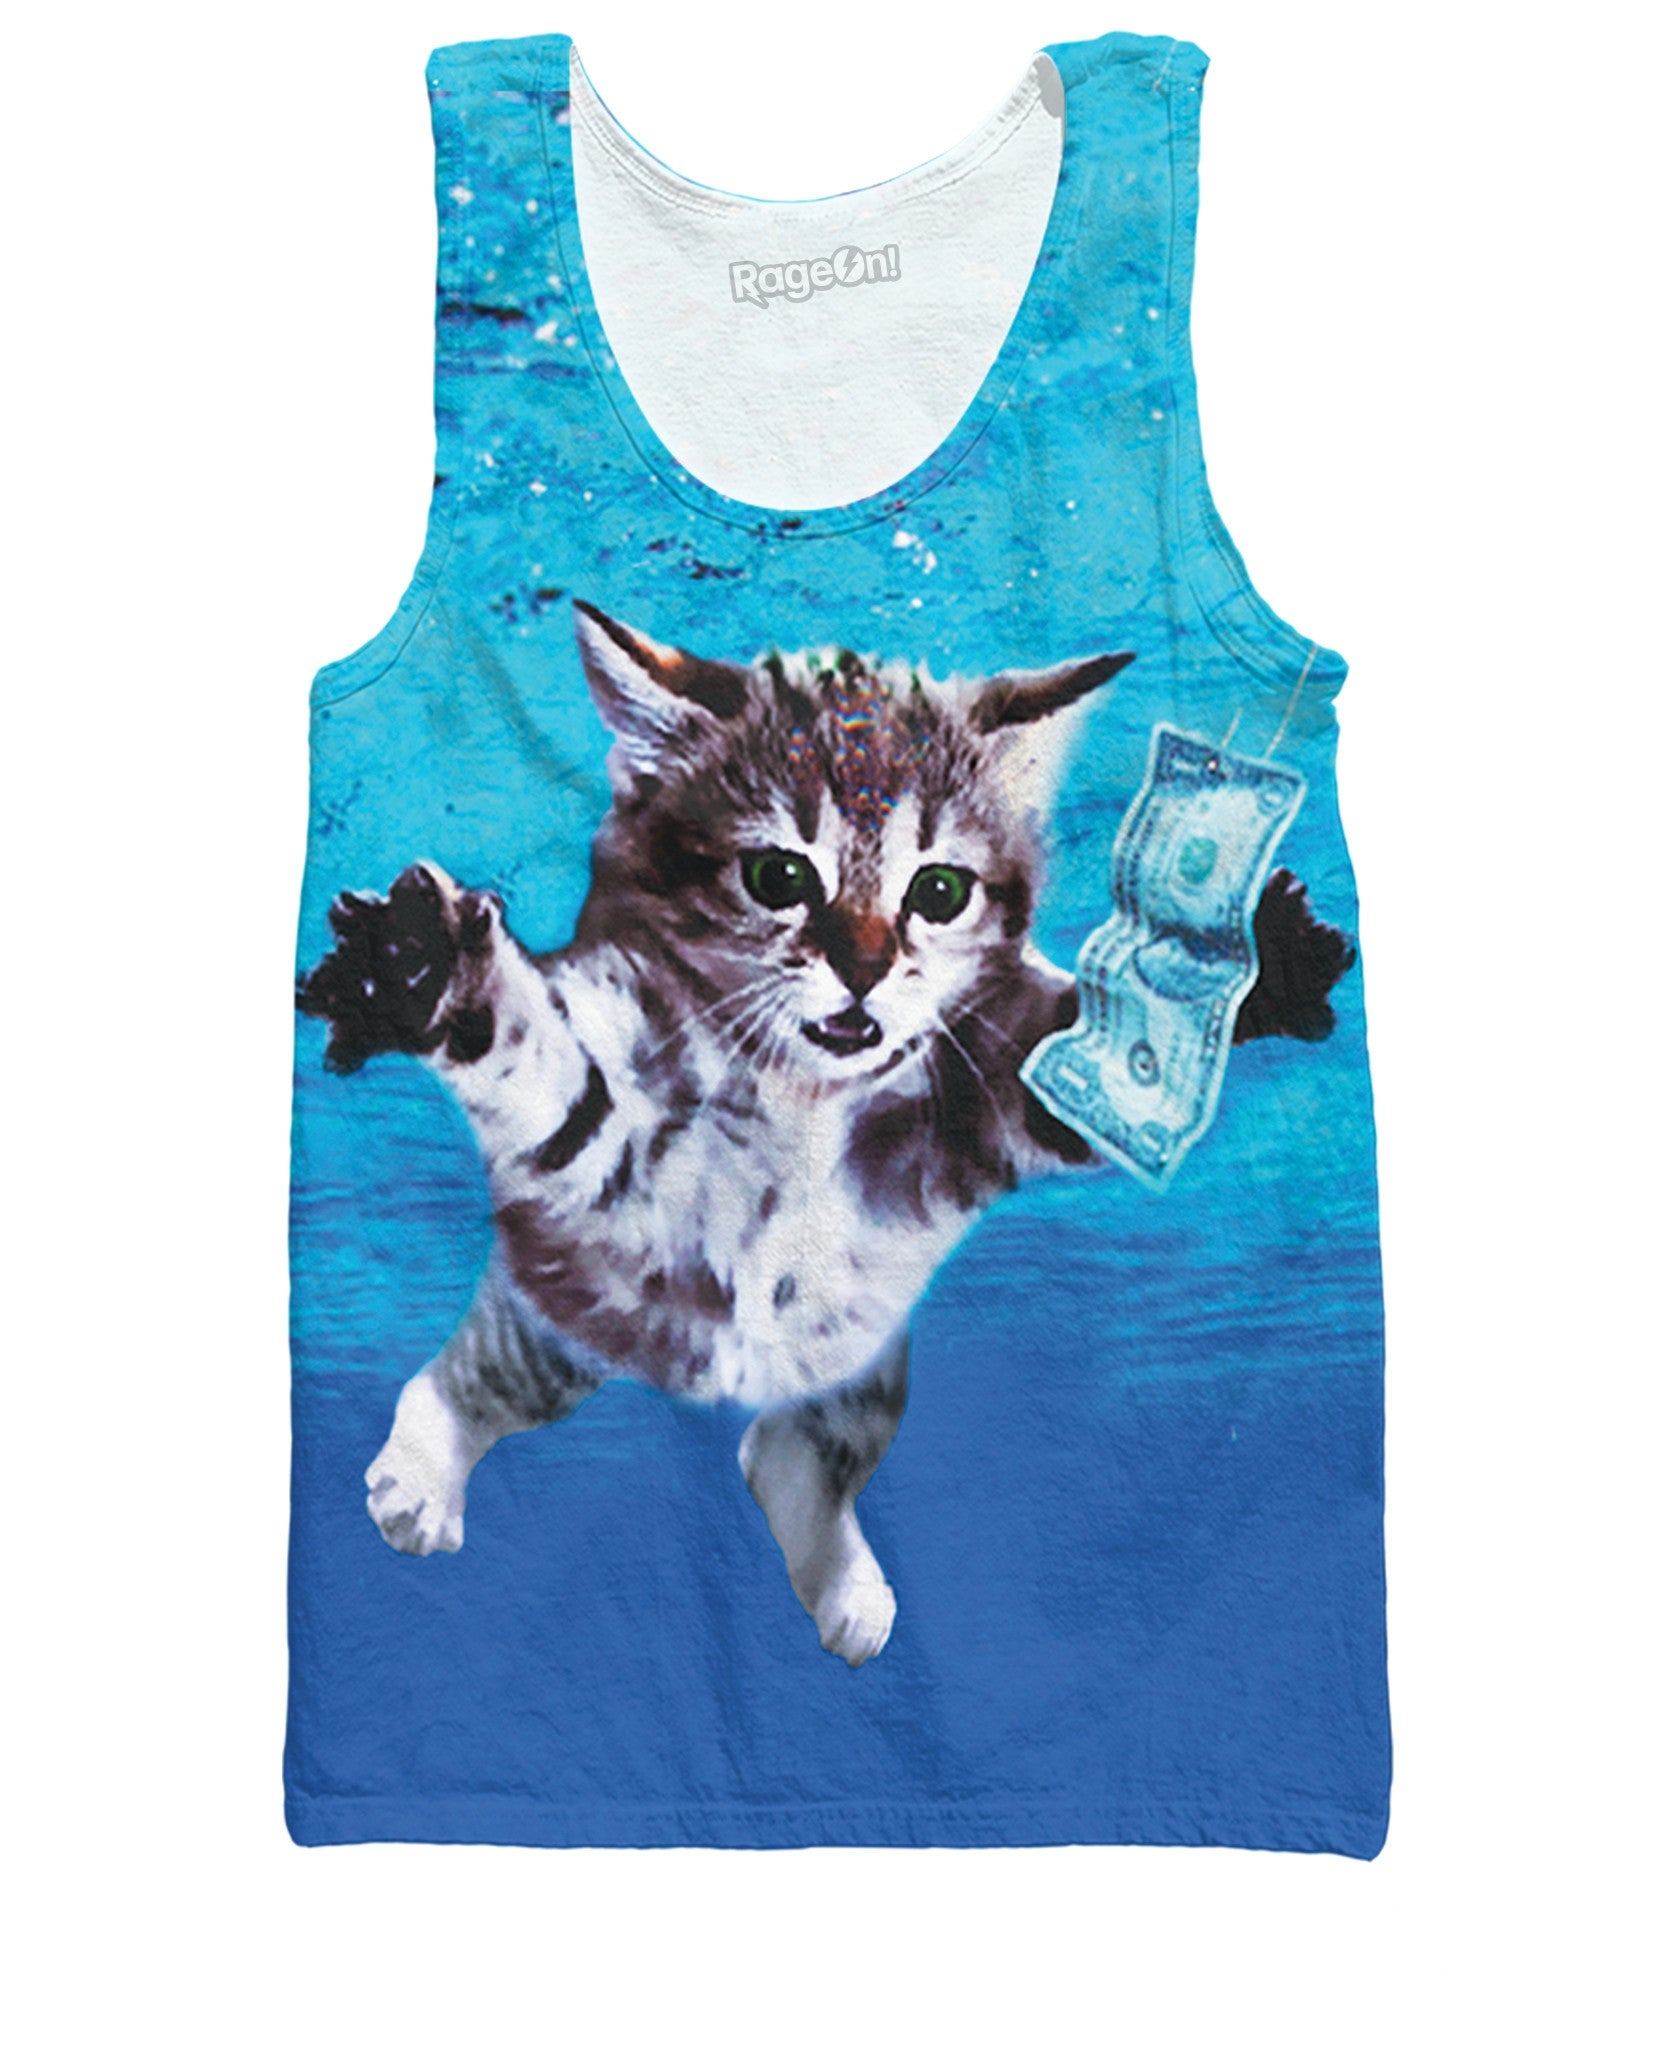 Cat Cobain Tank Top